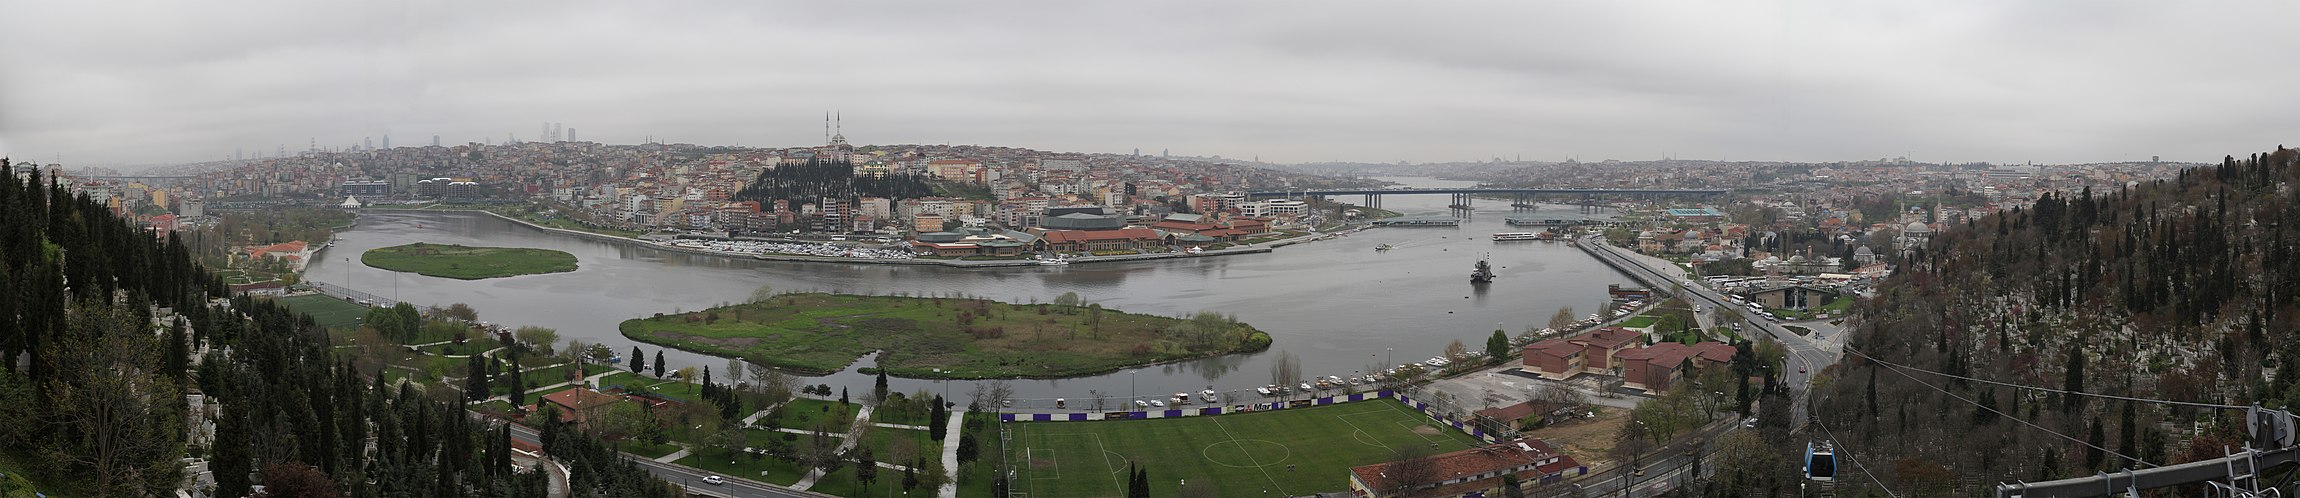 Golden Horn - panoramic view from Eyüp.jpg